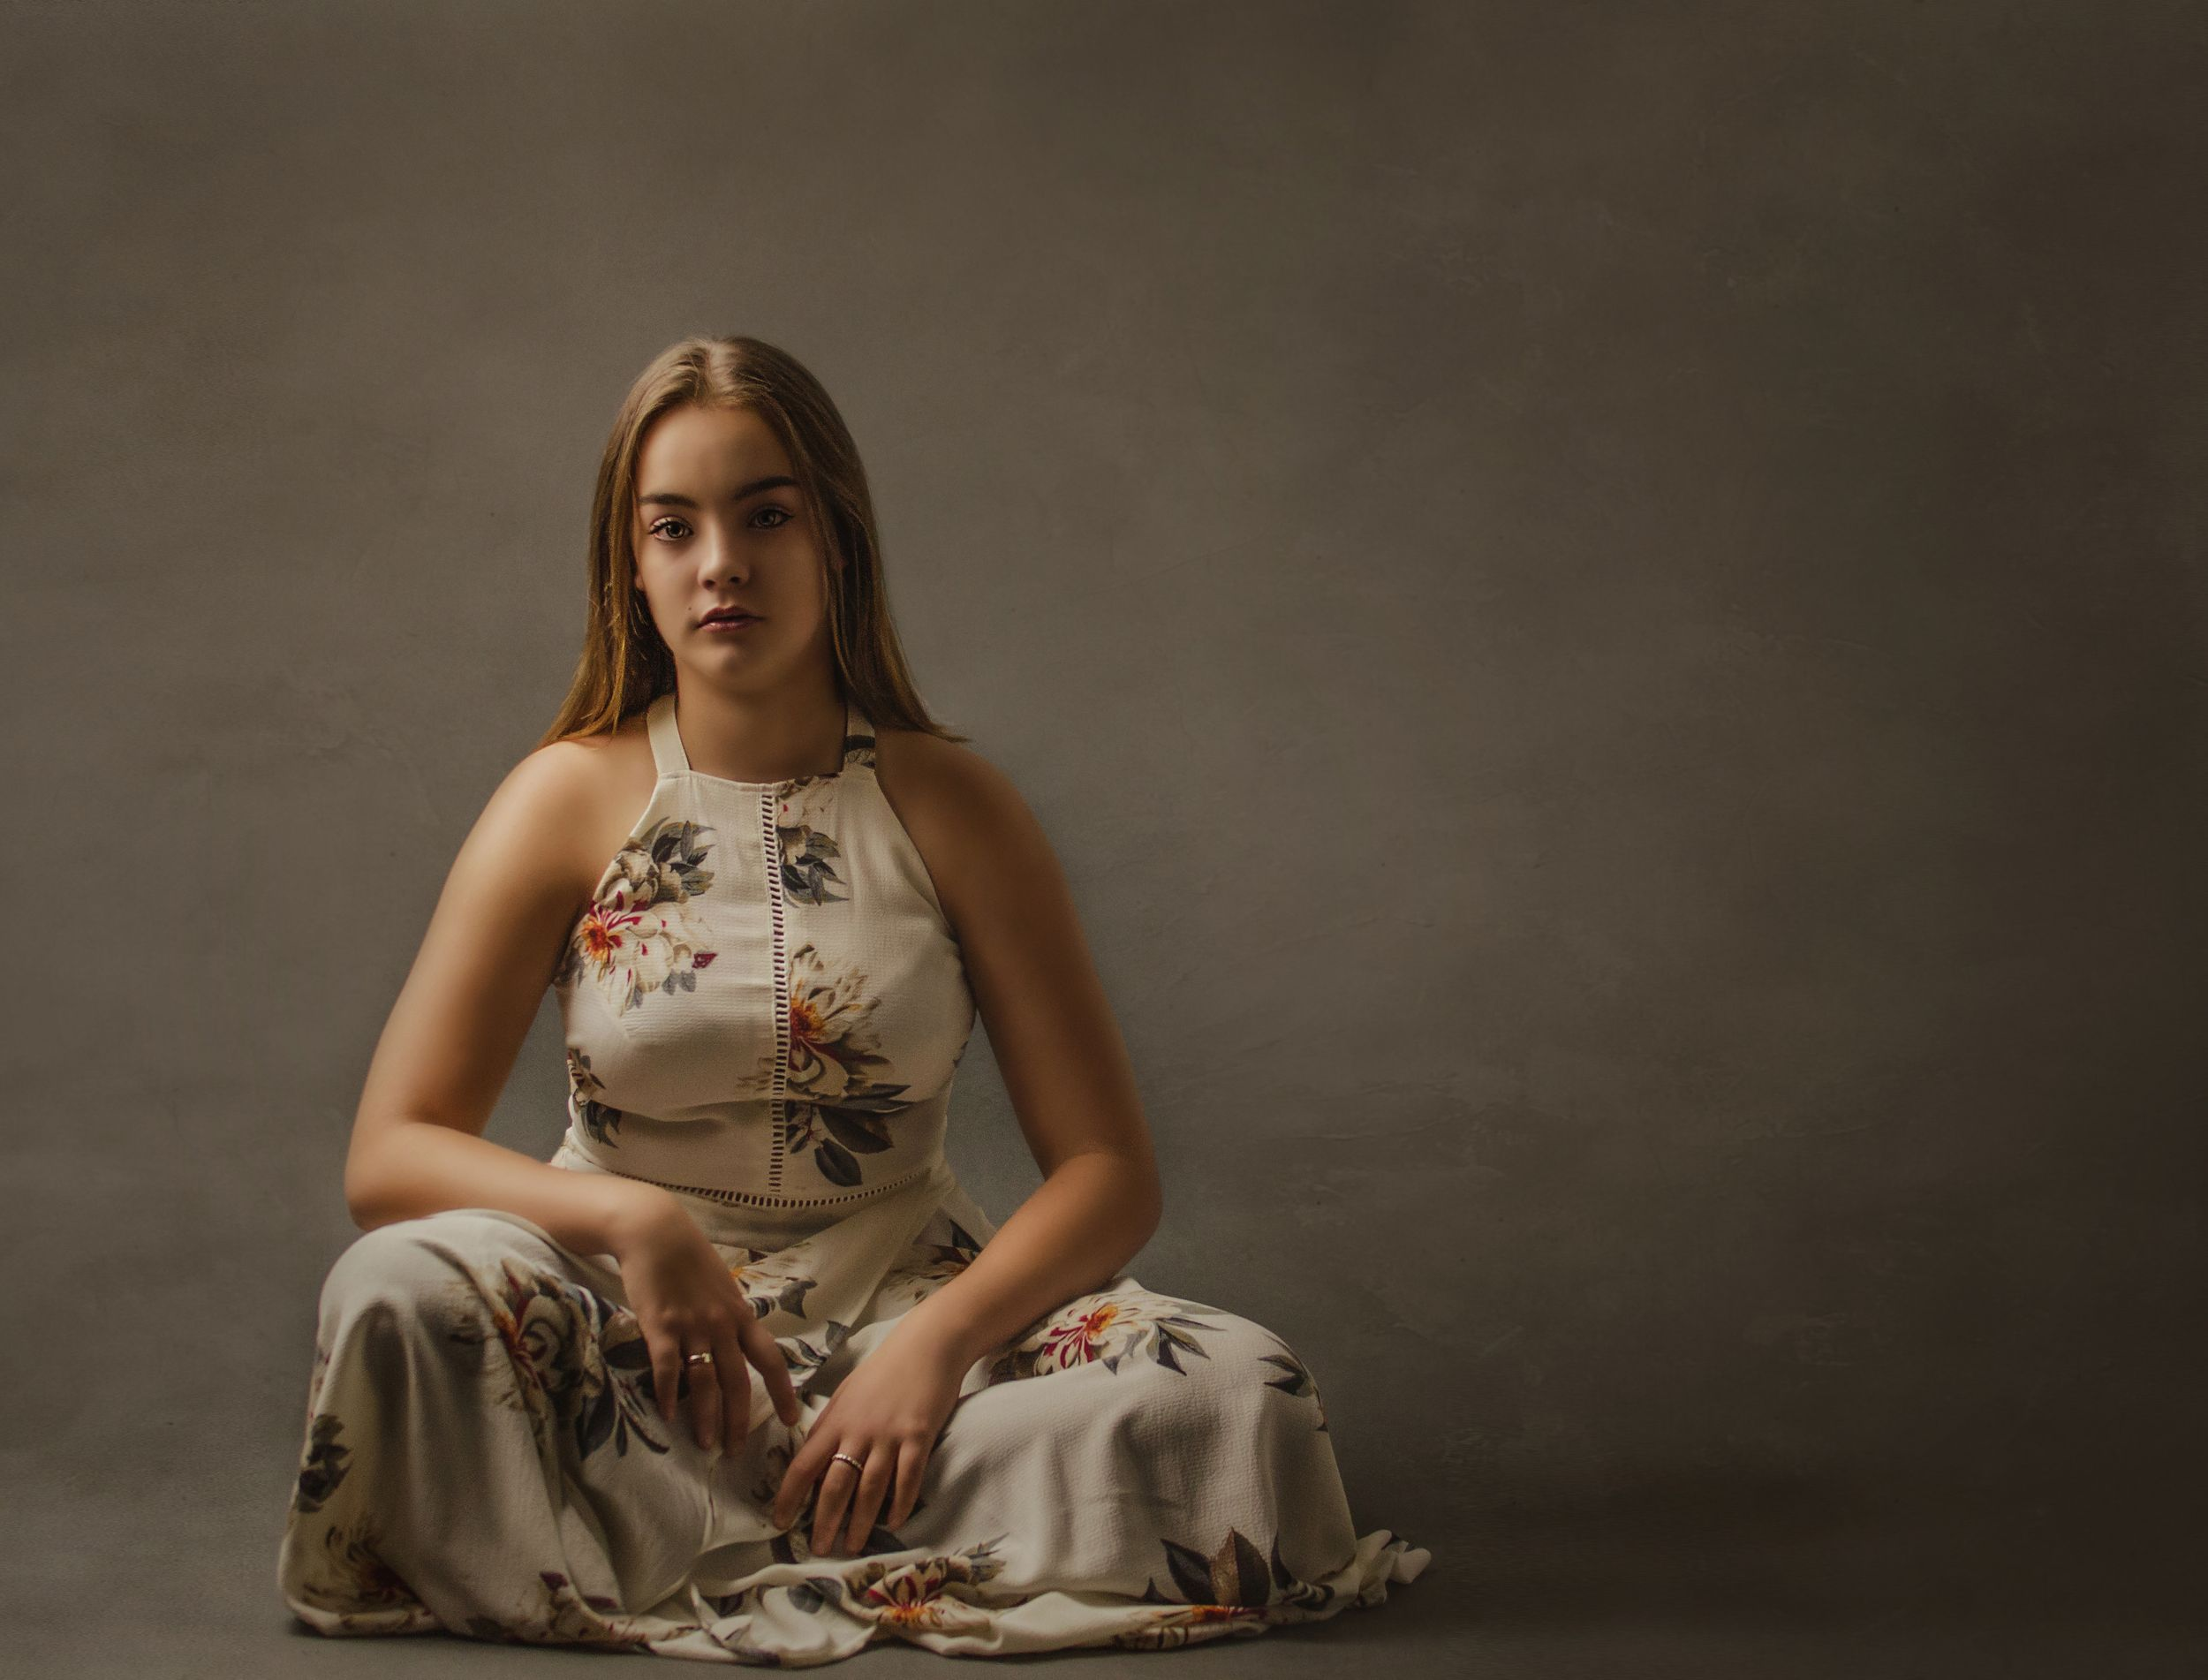 Glamour/Heirloom | Fine Art Portrait Photographer located in Cobourg, ON